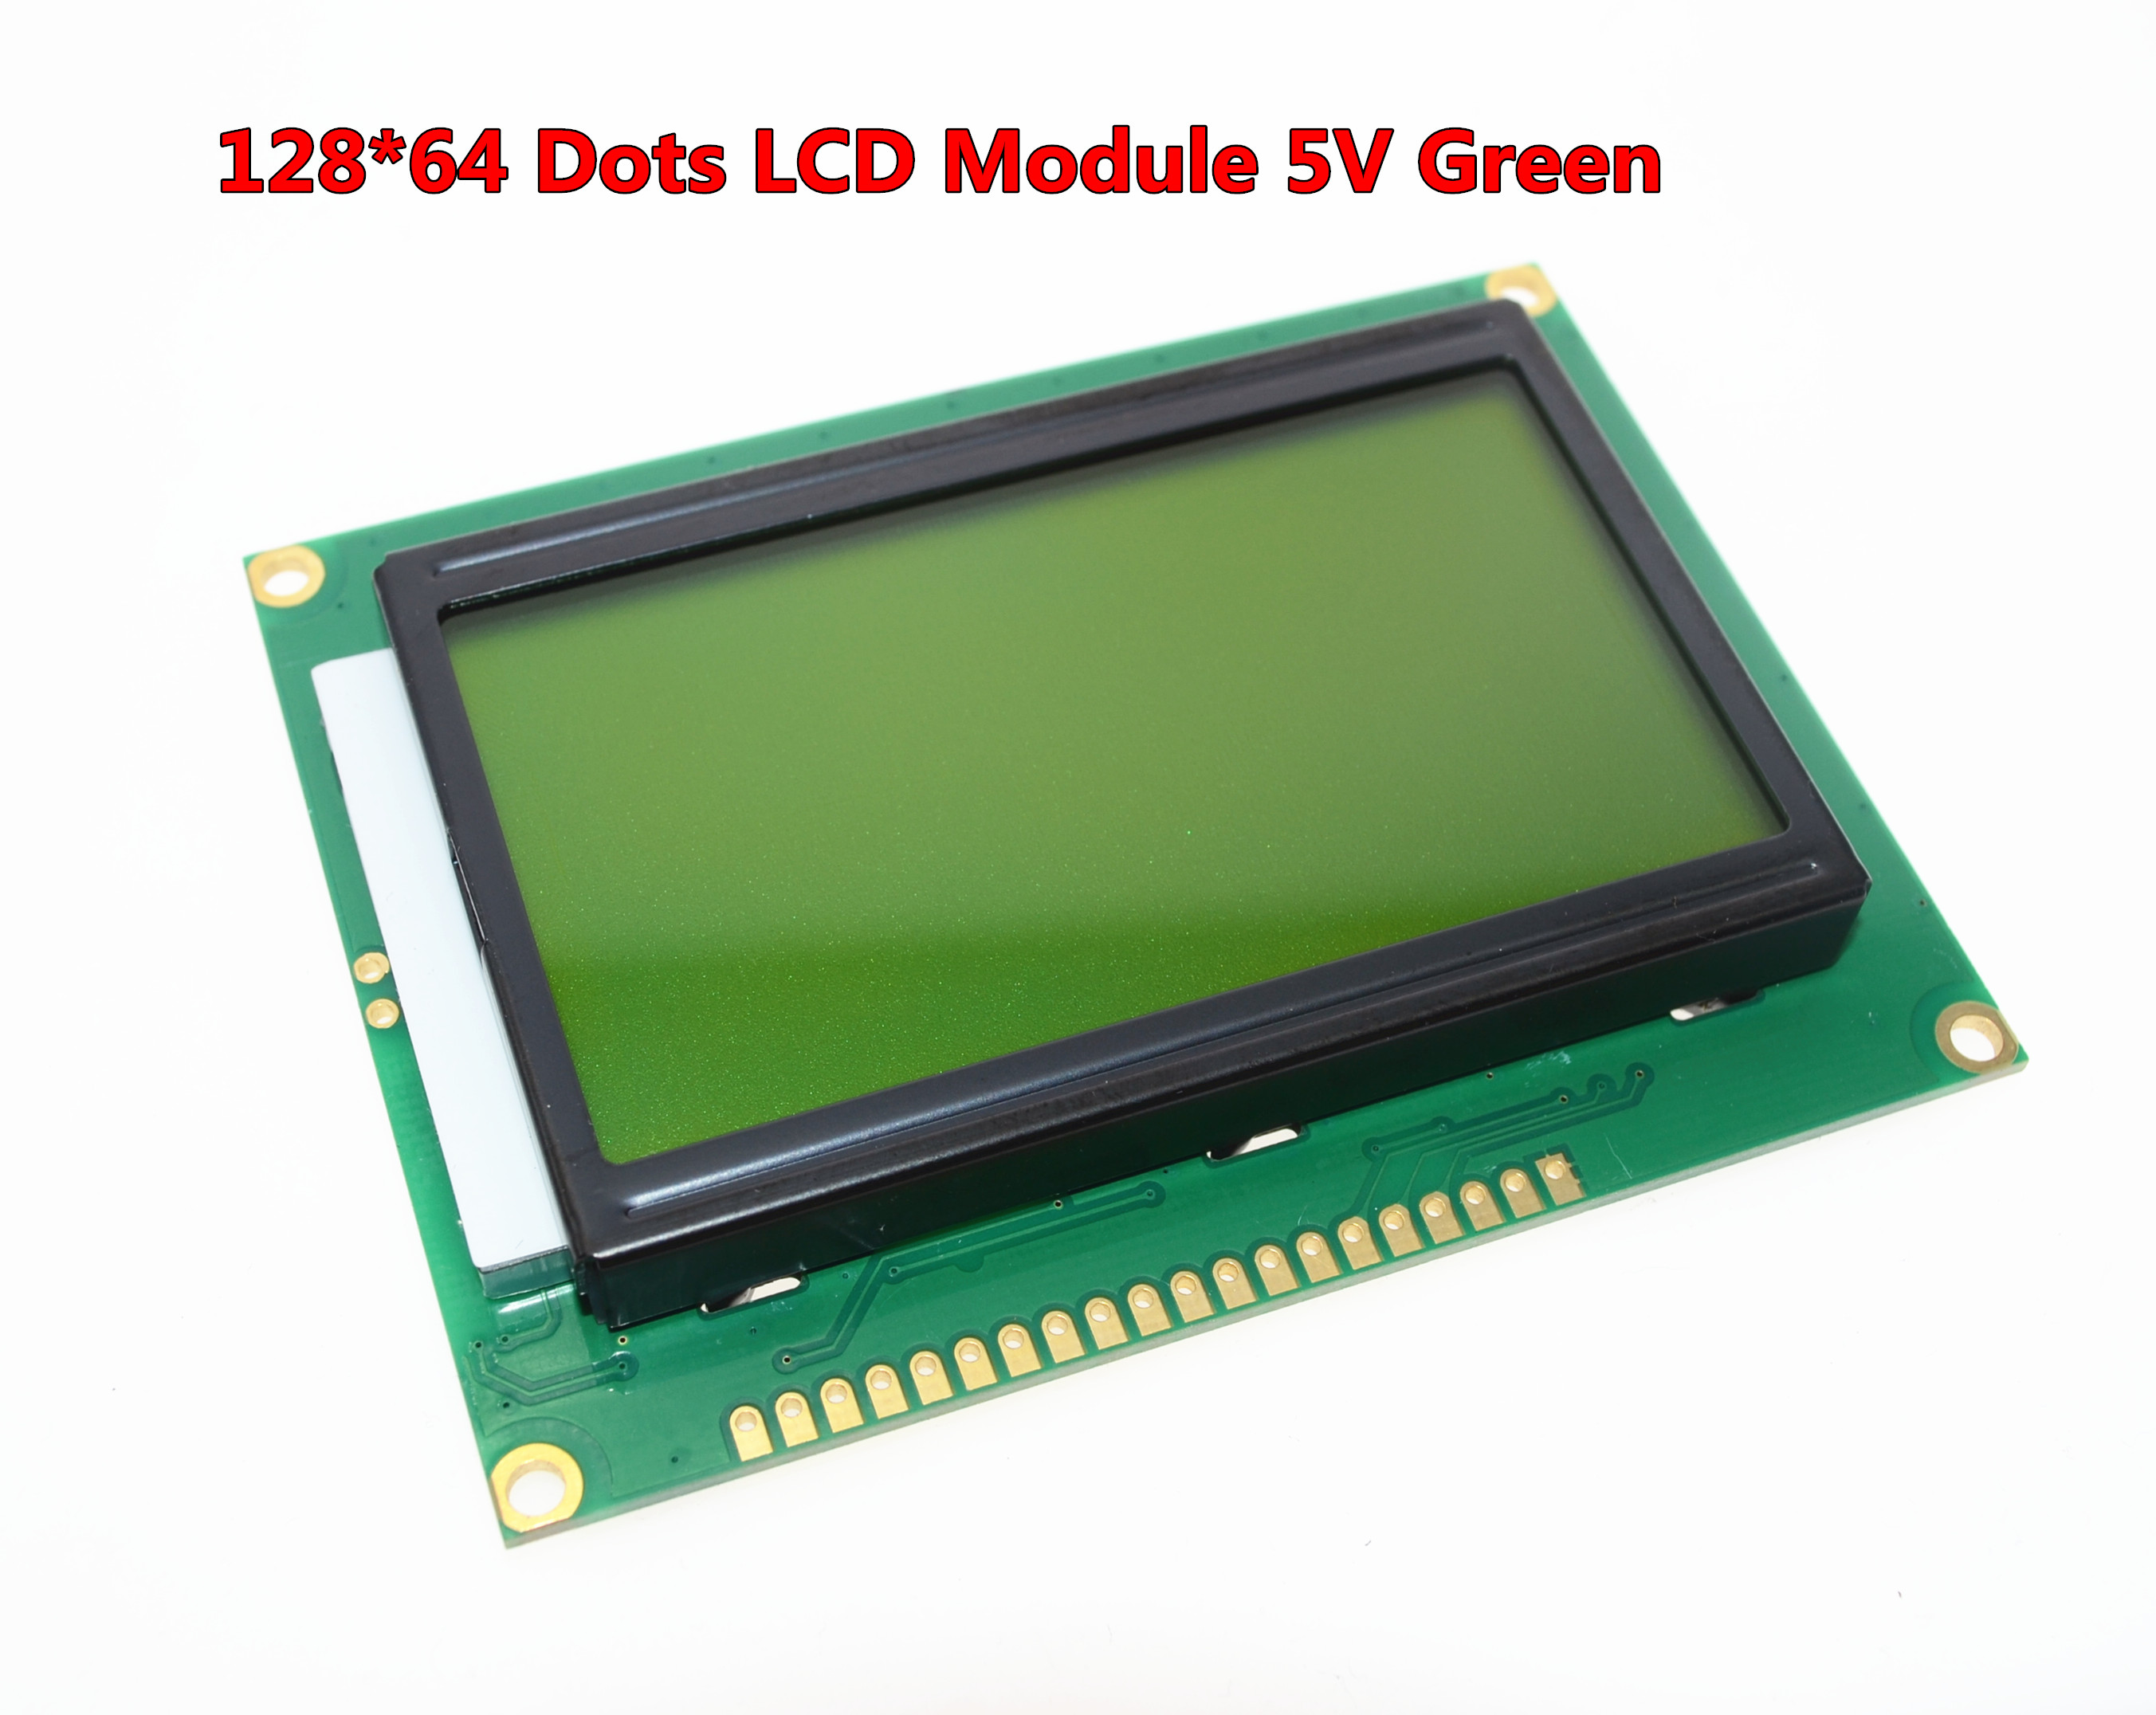 Free shipping 12864 128x64 Dots Graphic Green Color Backlight LCD Display Module for arduino raspberry pi